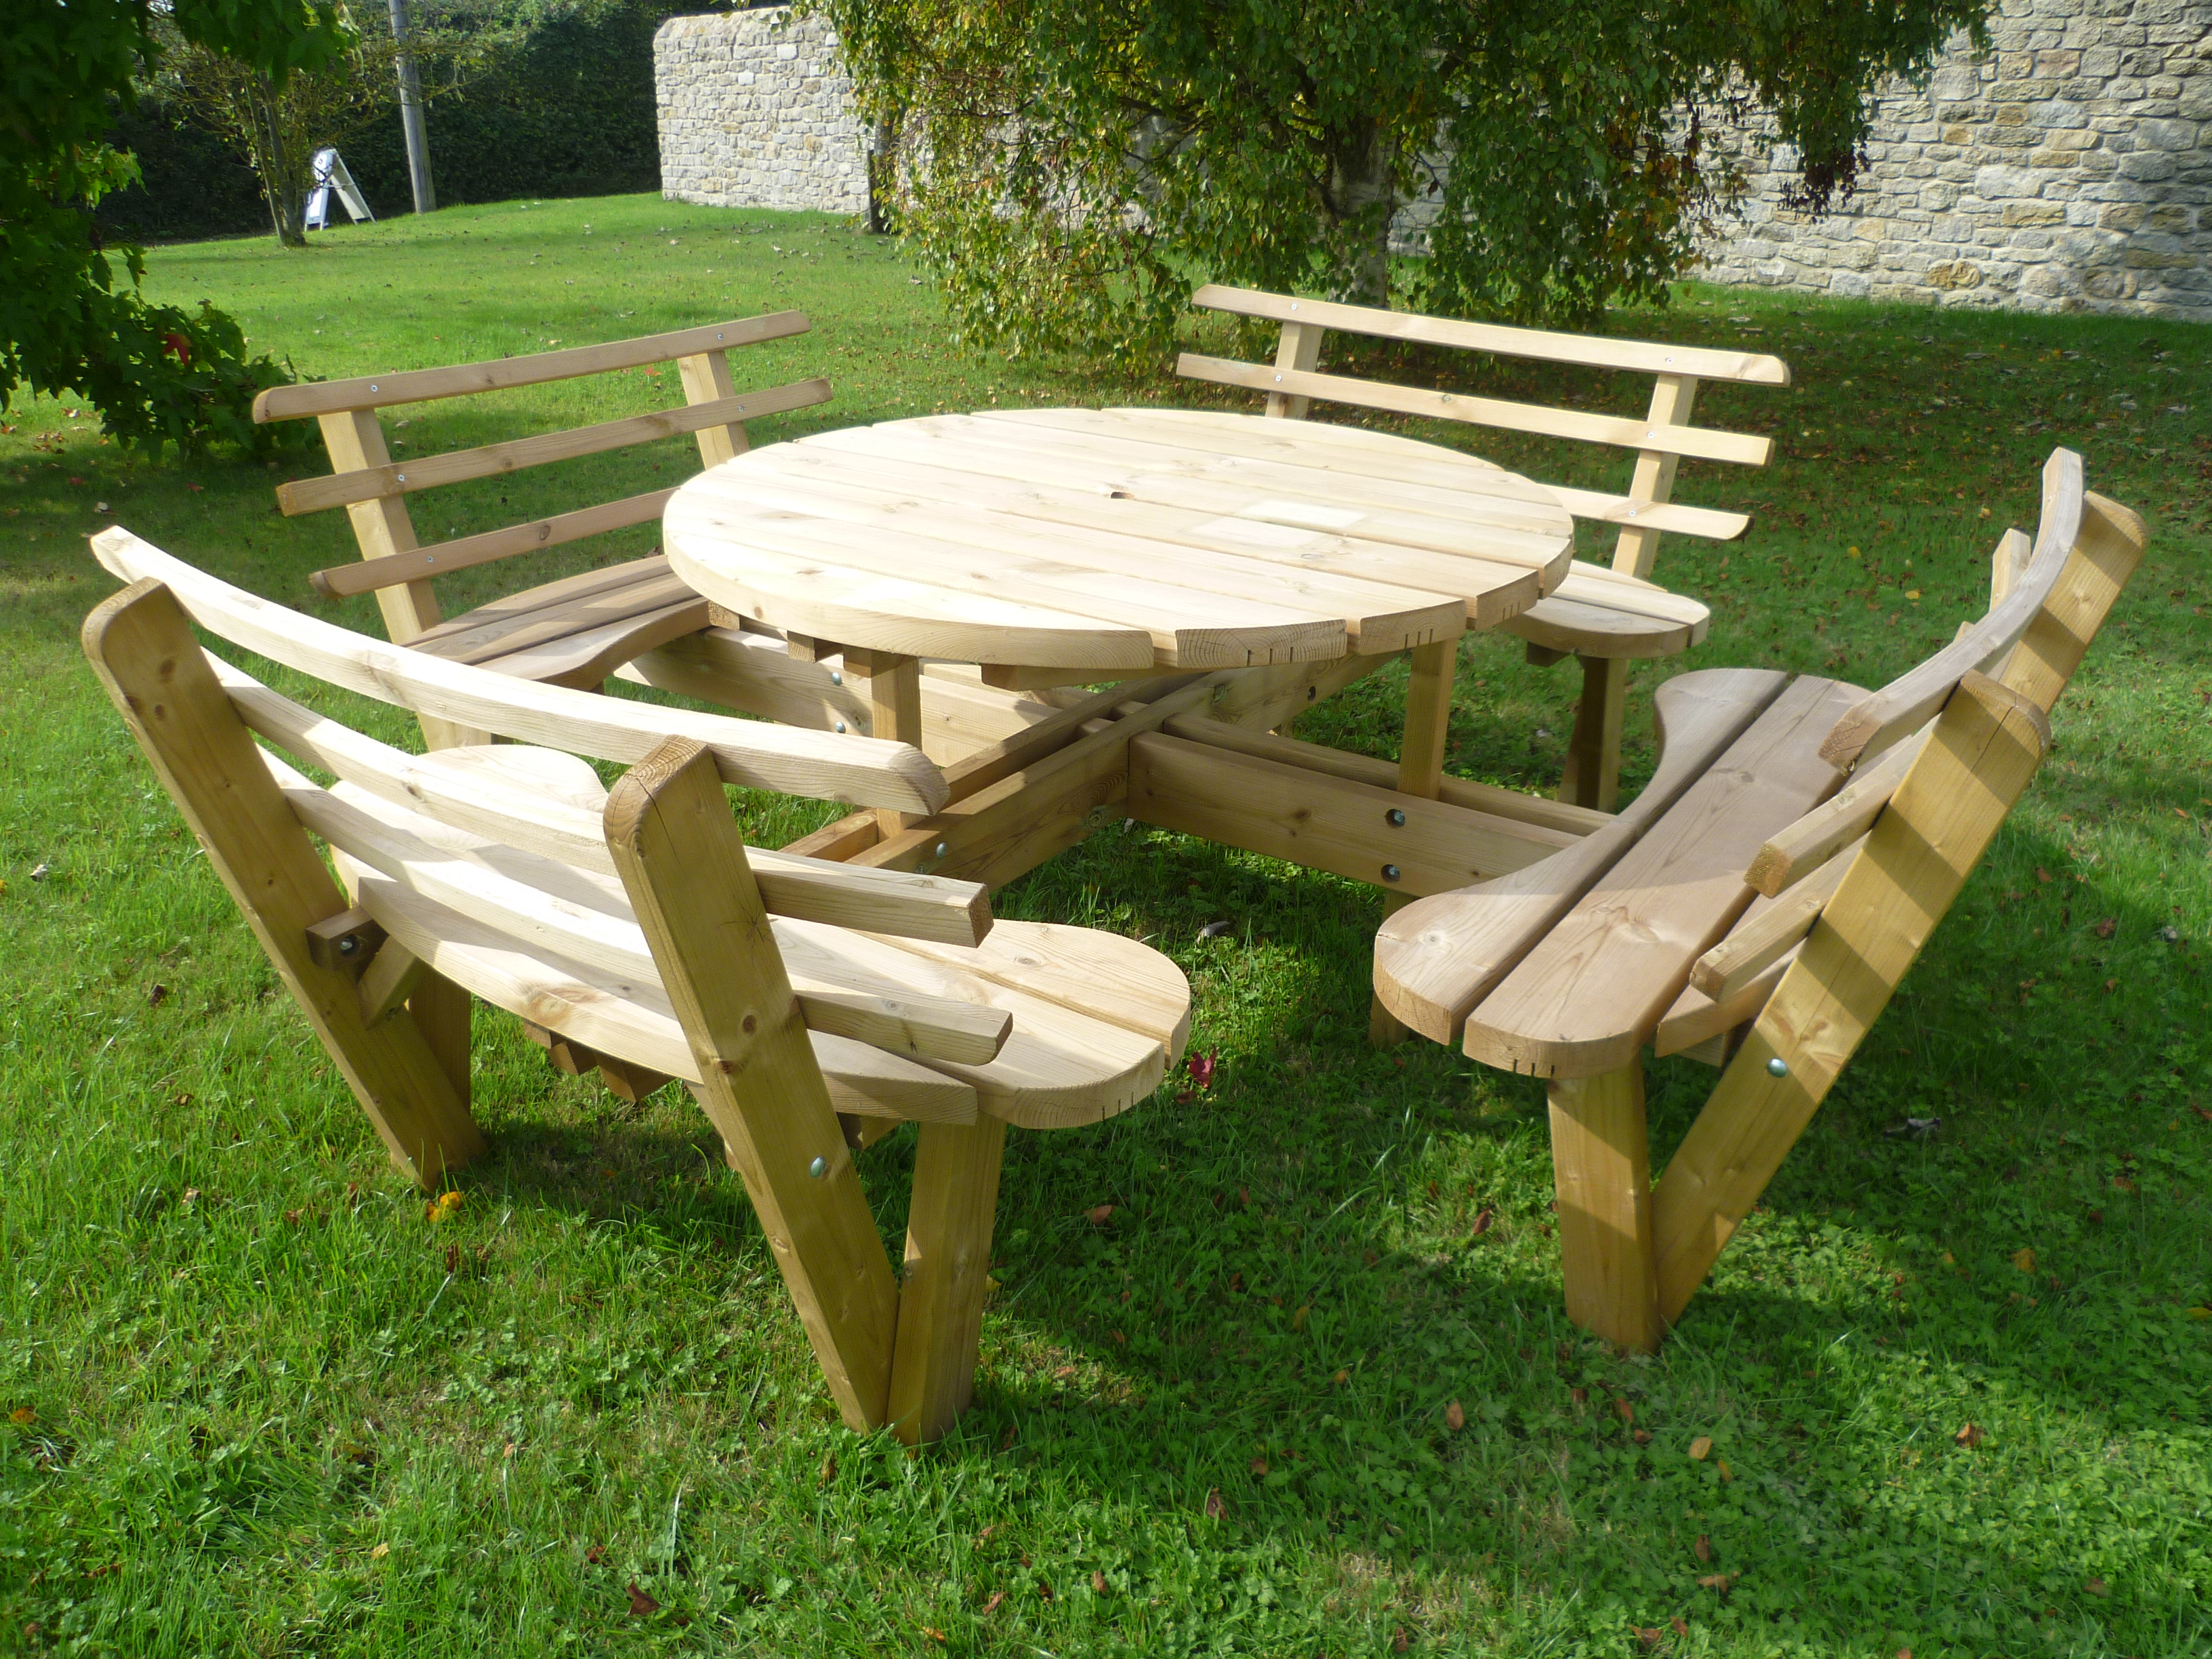 picnic table circular john bright fencing. Black Bedroom Furniture Sets. Home Design Ideas